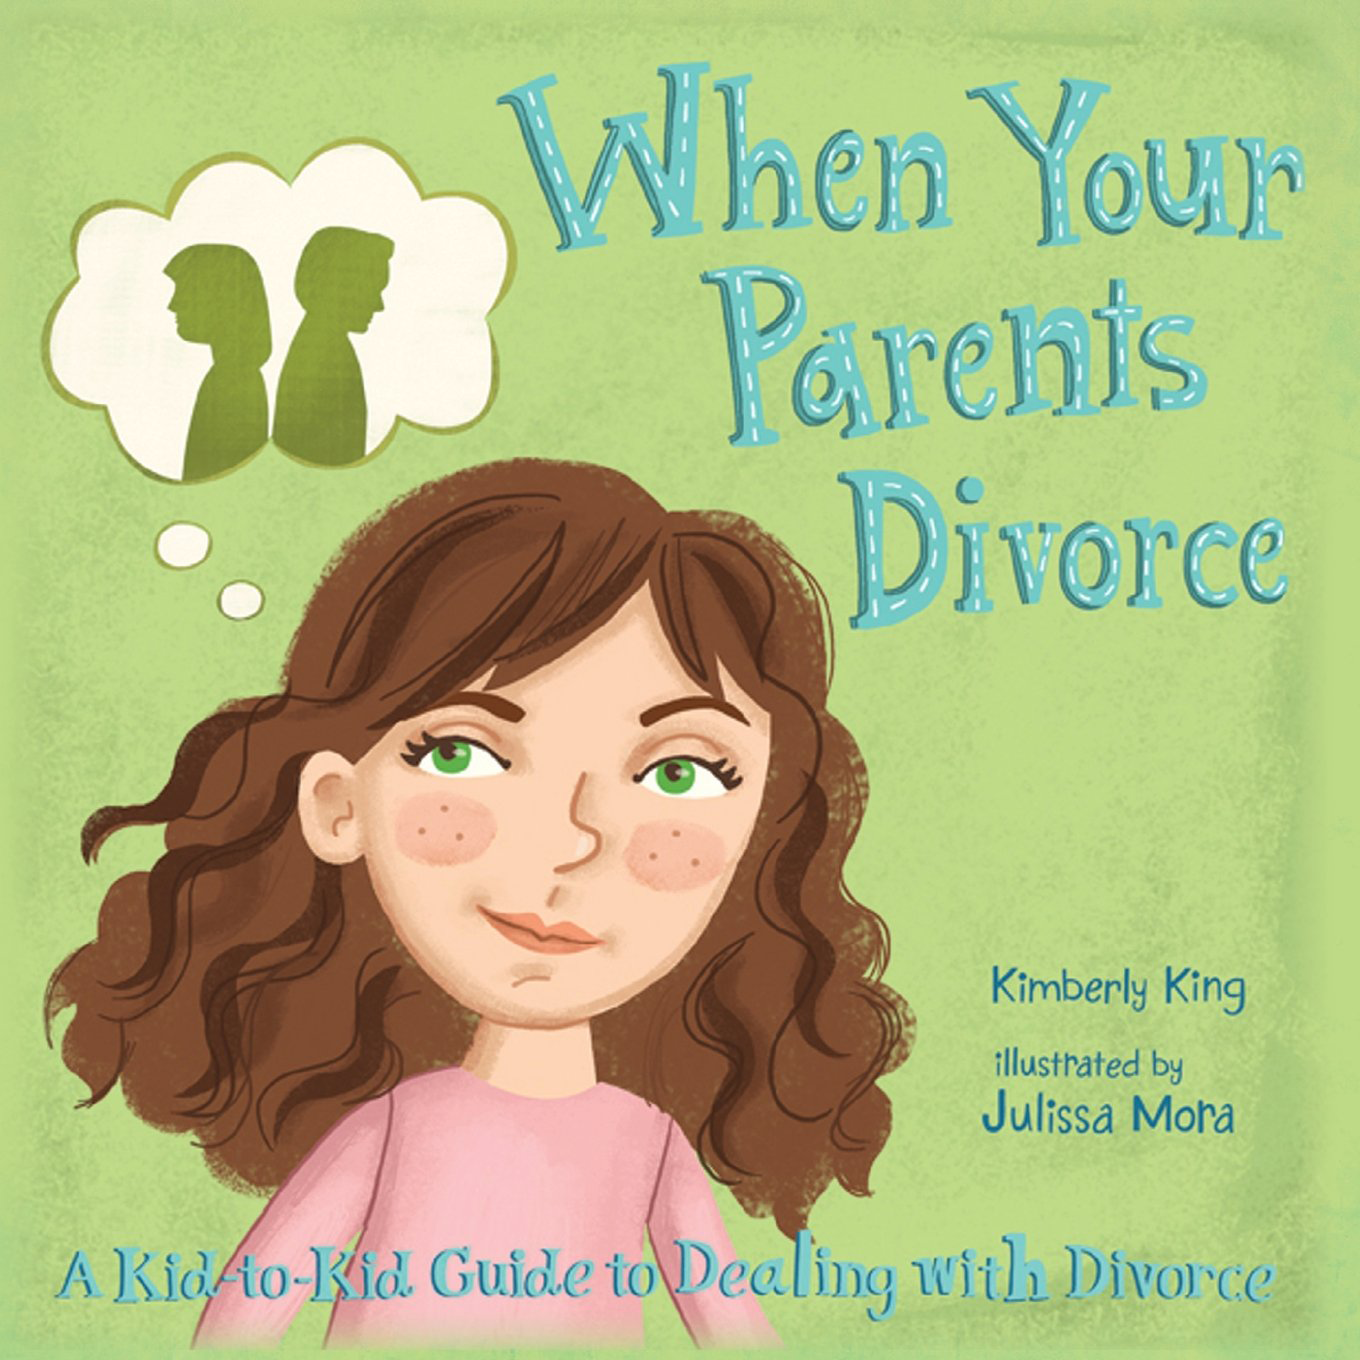 Kid-to-Kid Guide to Dealing with Divorce